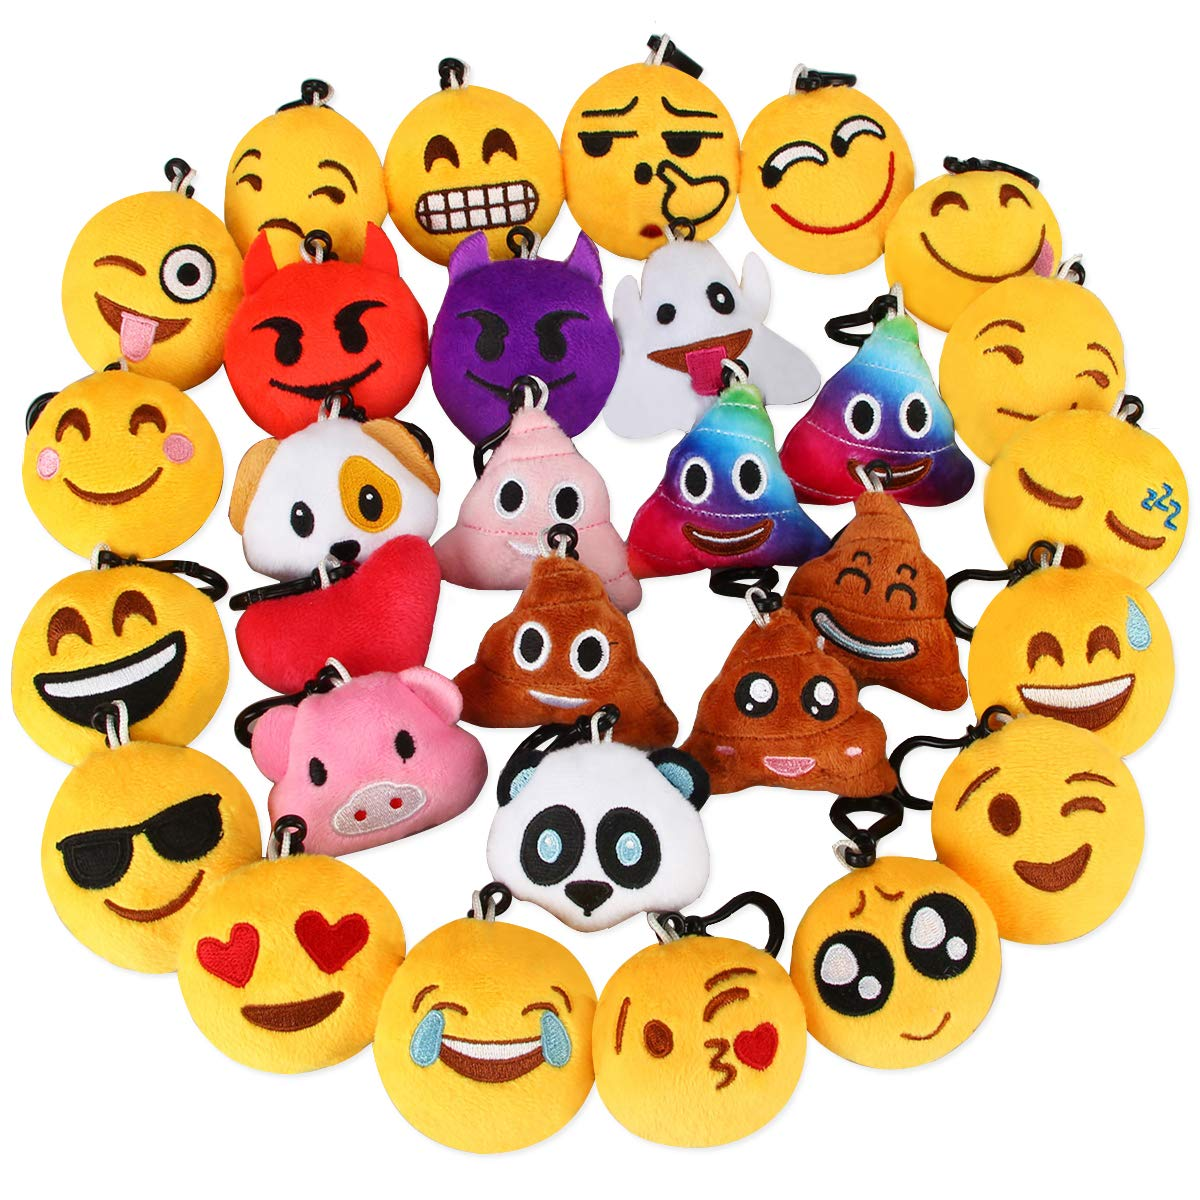 Dreampark Emoji Keychain, Emoji Key Chain Mini Plush Pillows, Party Favors for Kids, Easter Eggs Fillers / Birthday Party Supplies 2' Set of 30 Easter Eggs Fillers / Birthday Party Supplies 2 Set of 30